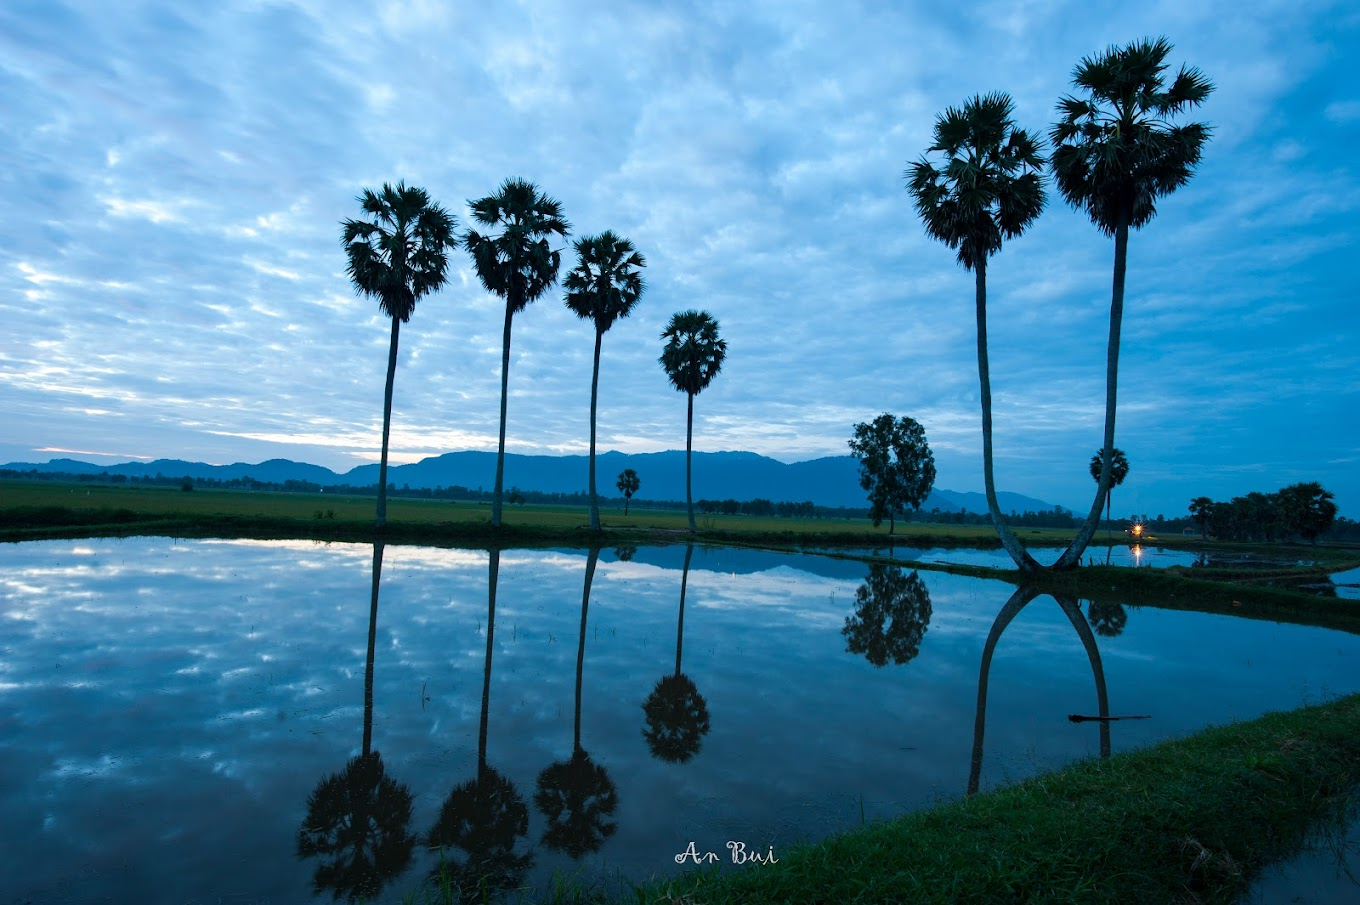 Sunrise at rice paddy fields with palm trees